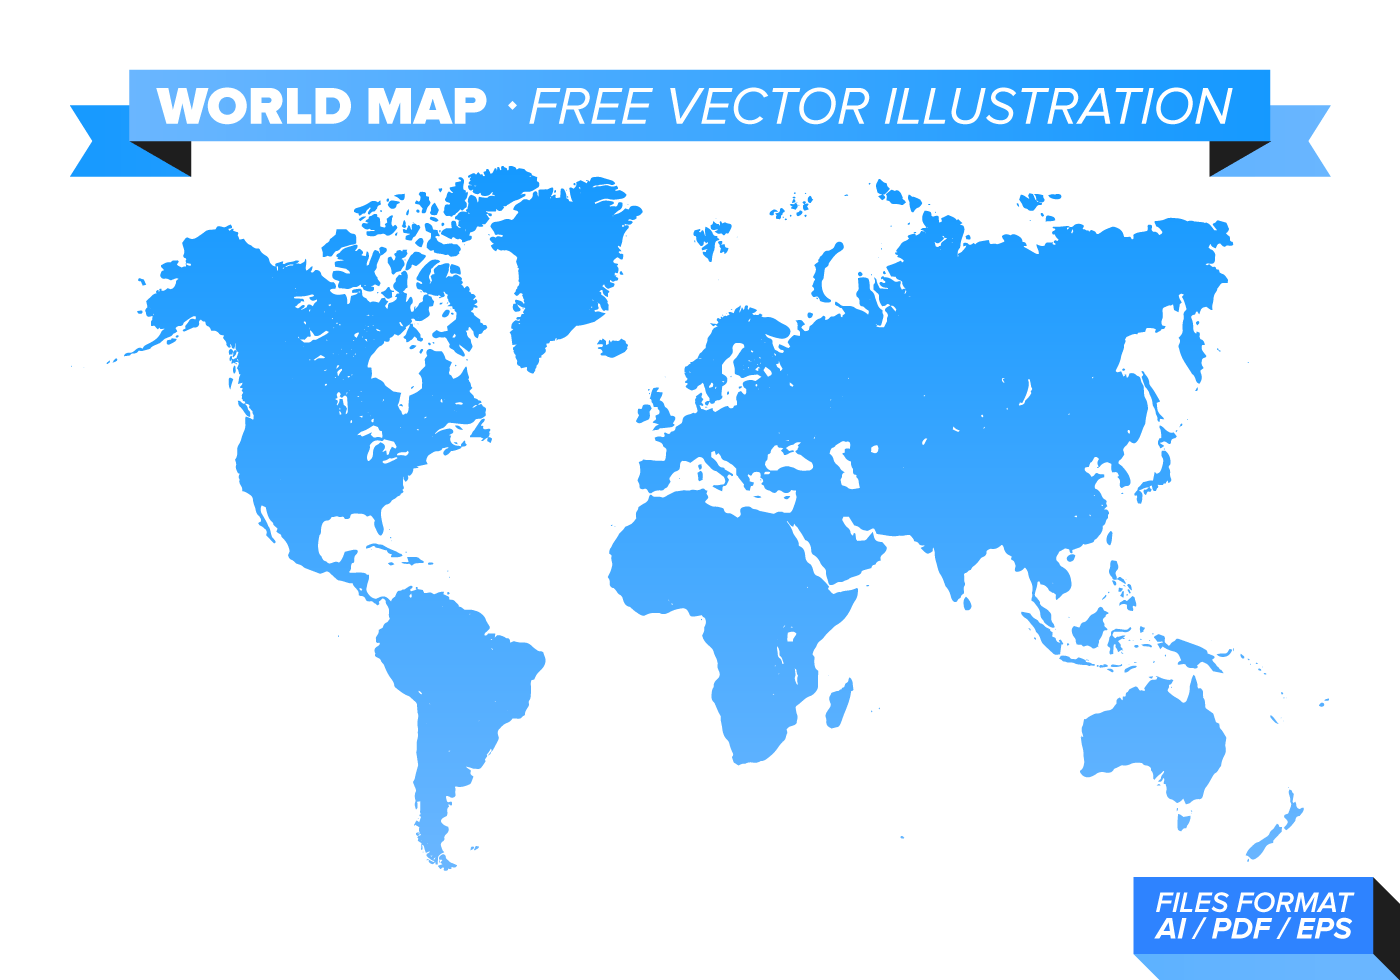 World Map Free Vector Illustration